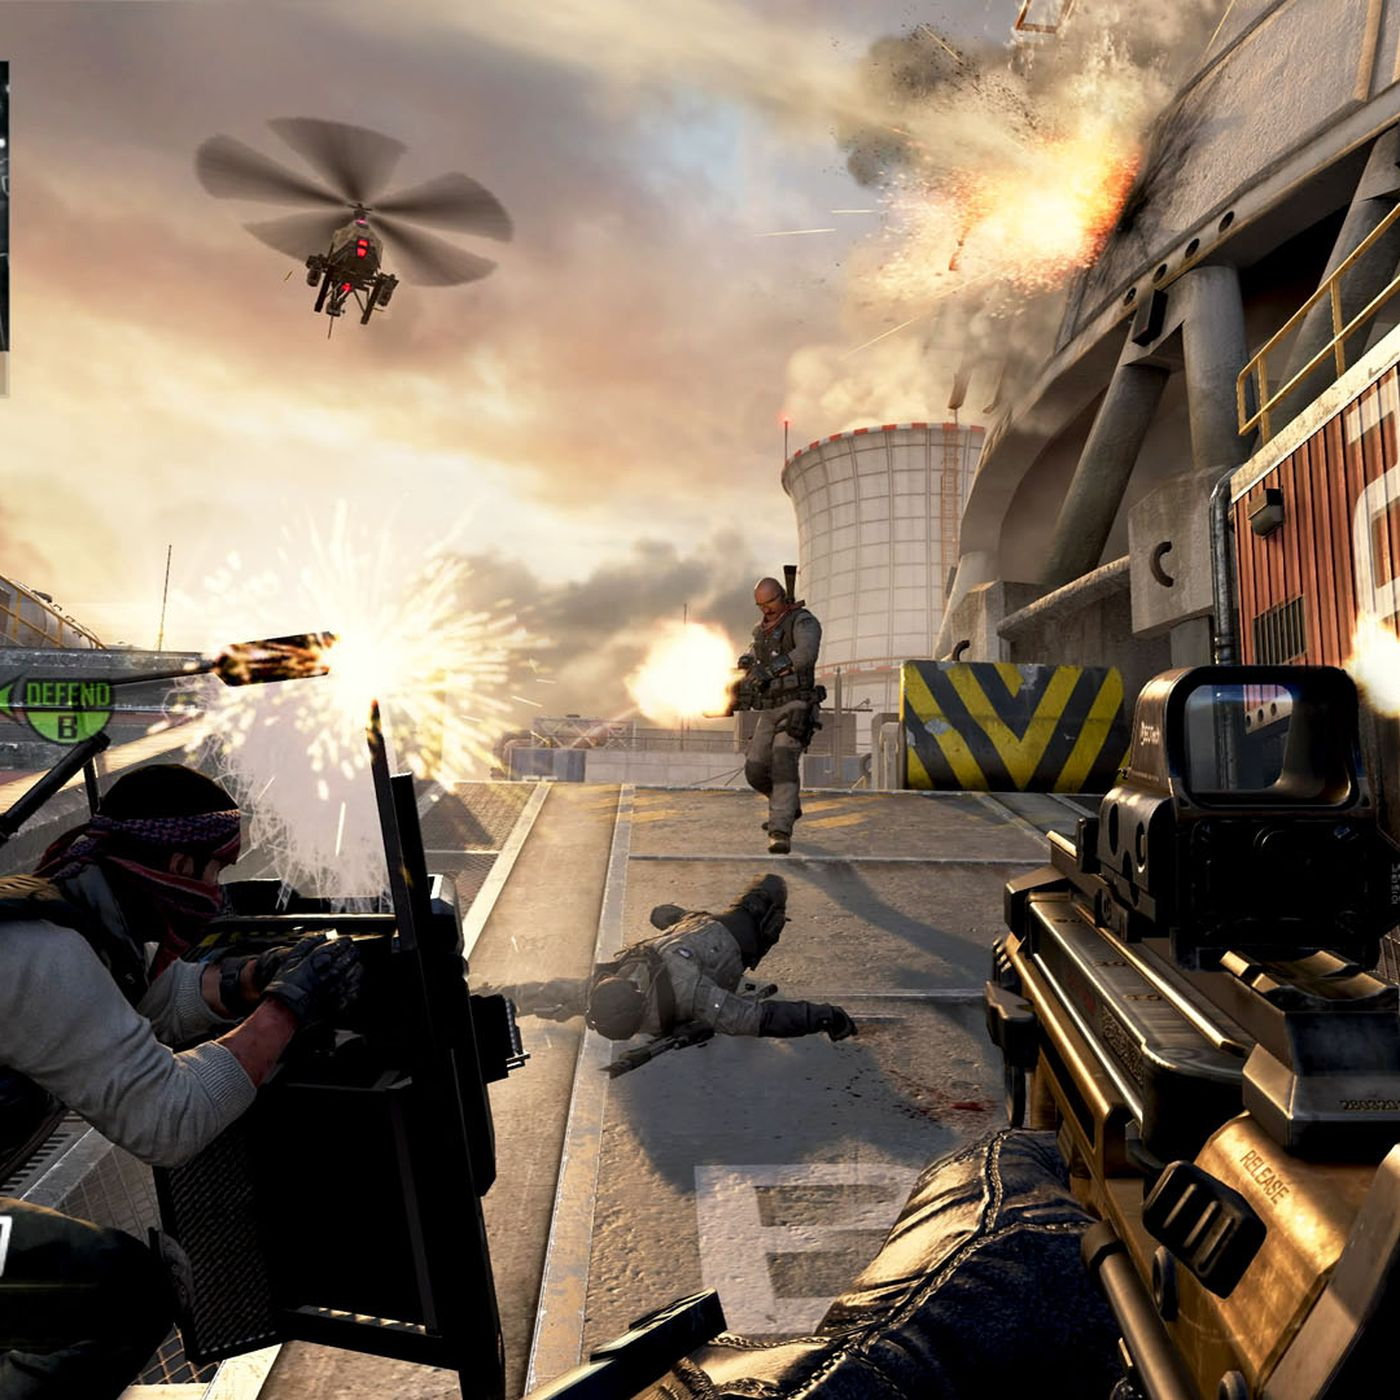 Black Ops 2 Drone Glitches Drone Hd Wallpaper Regimage Org